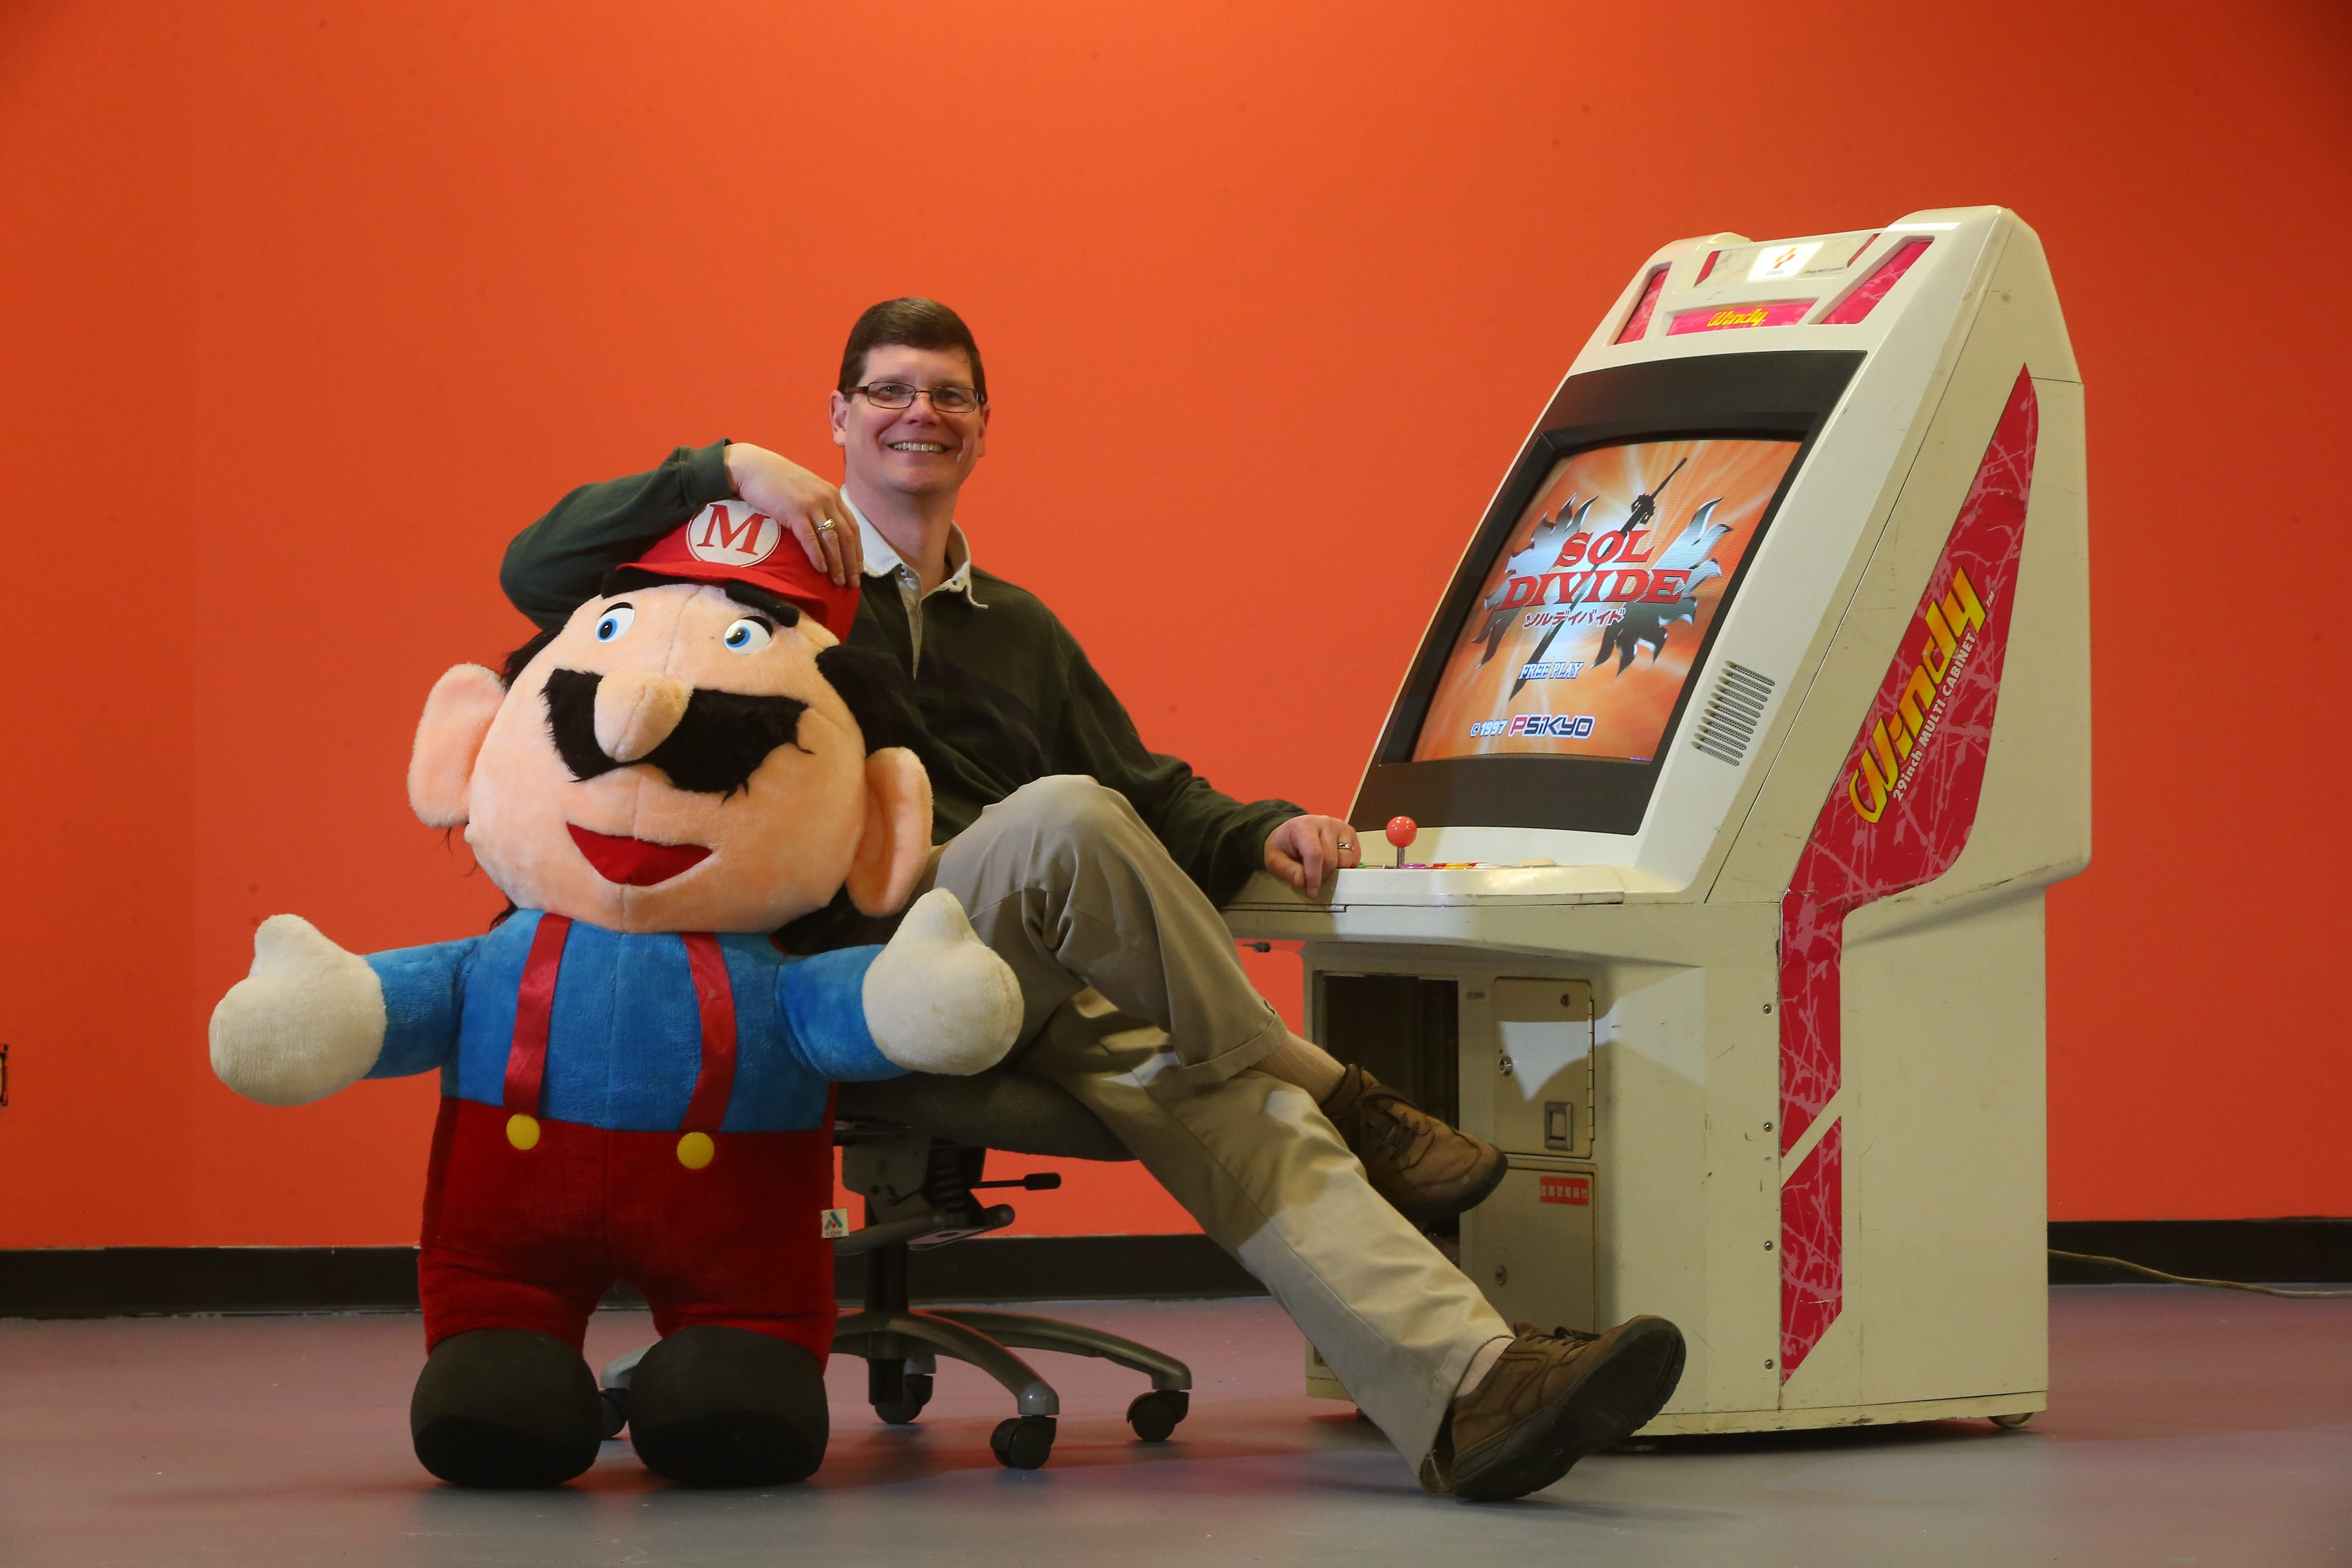 Michael Thomasson, with an old Japanese video game and a stuffed Mario is a Canisius College professor of  animation and video game design. He has been certified by the Guinness World Records Gamer's Edition as owning the world's largest video game collection with more than 10,500 games.